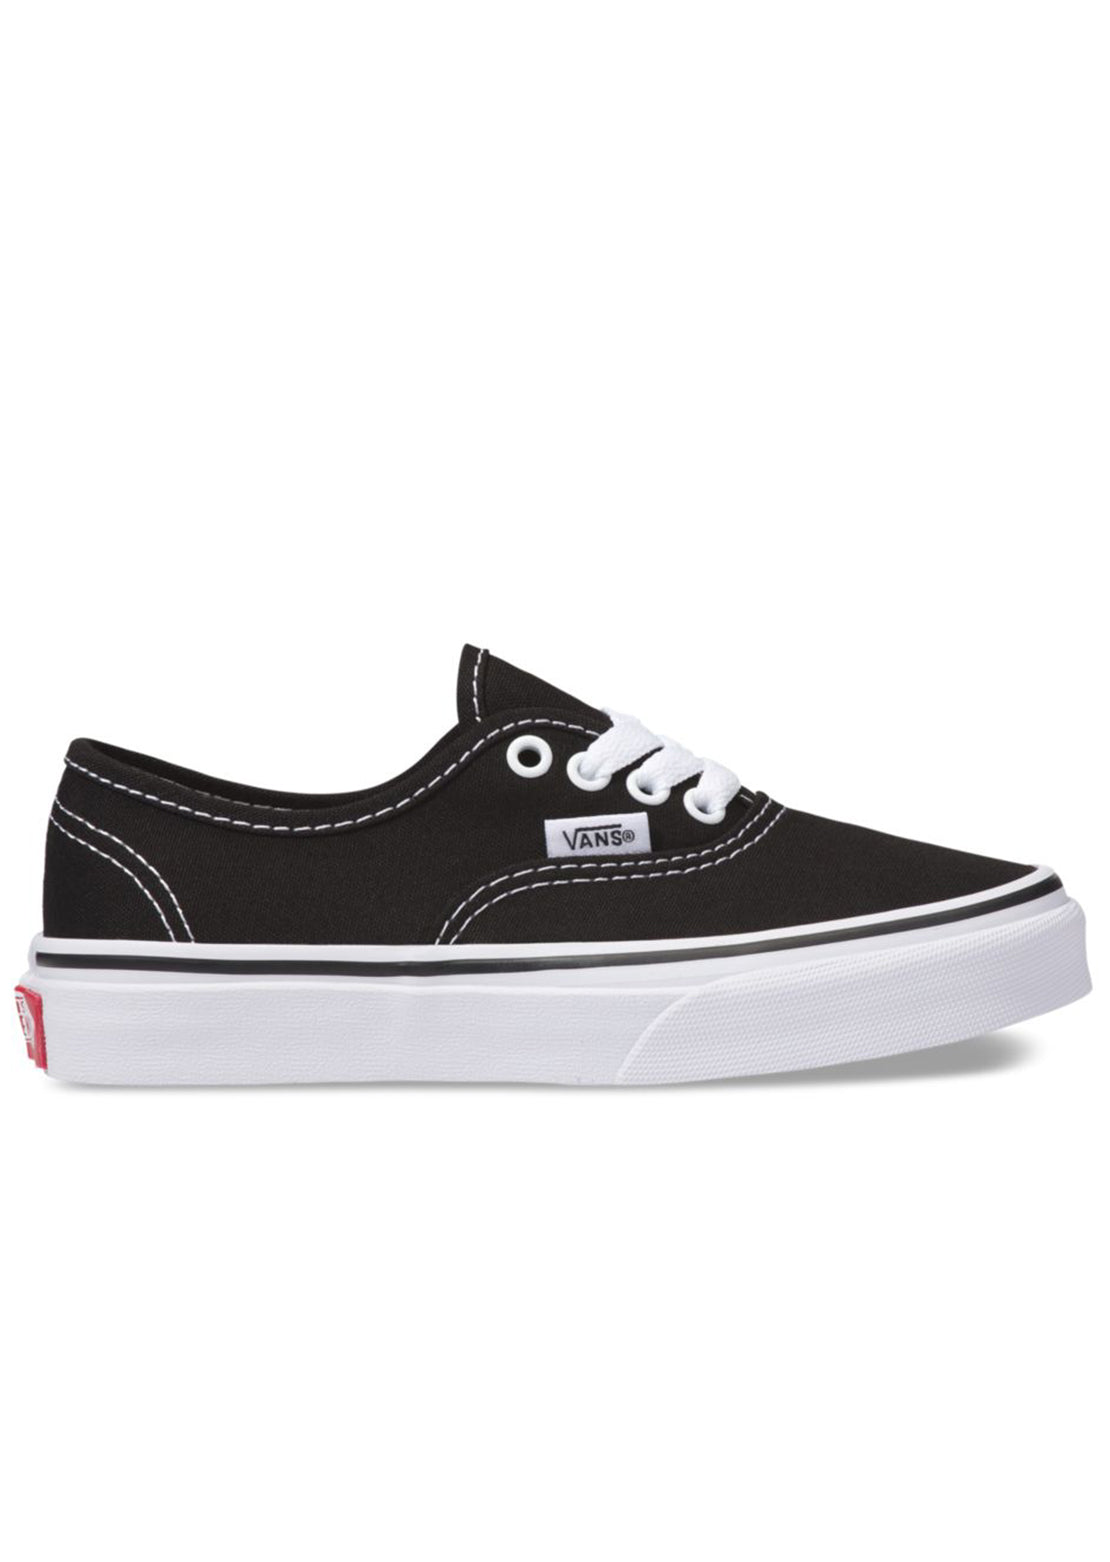 Vans Junior Authentic Shoes Black